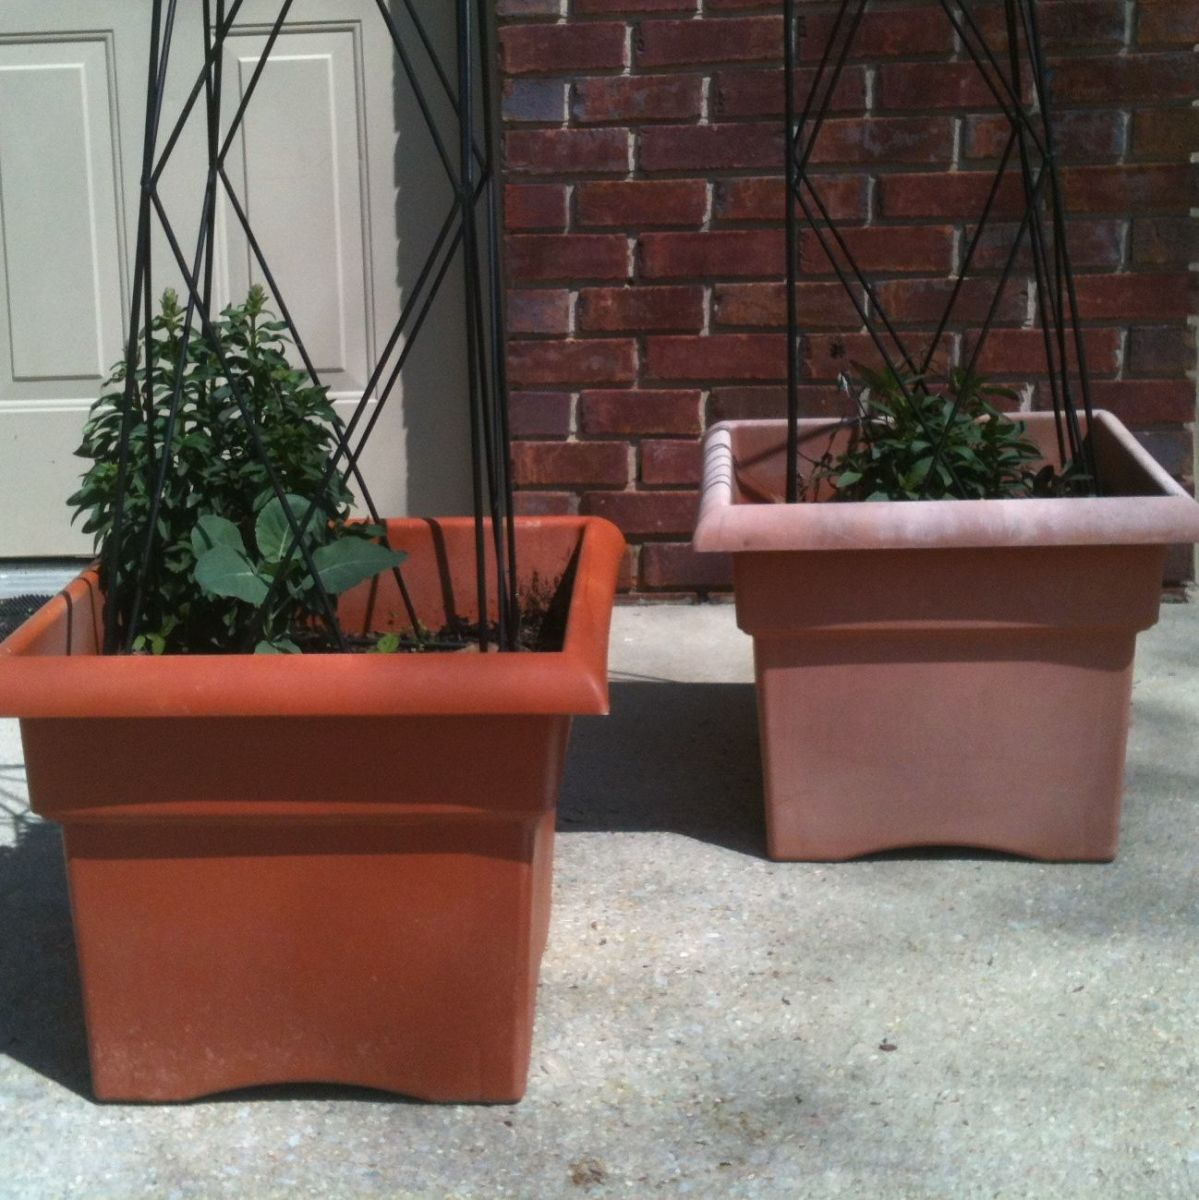 Closer look at the plastic terra-cotta planters